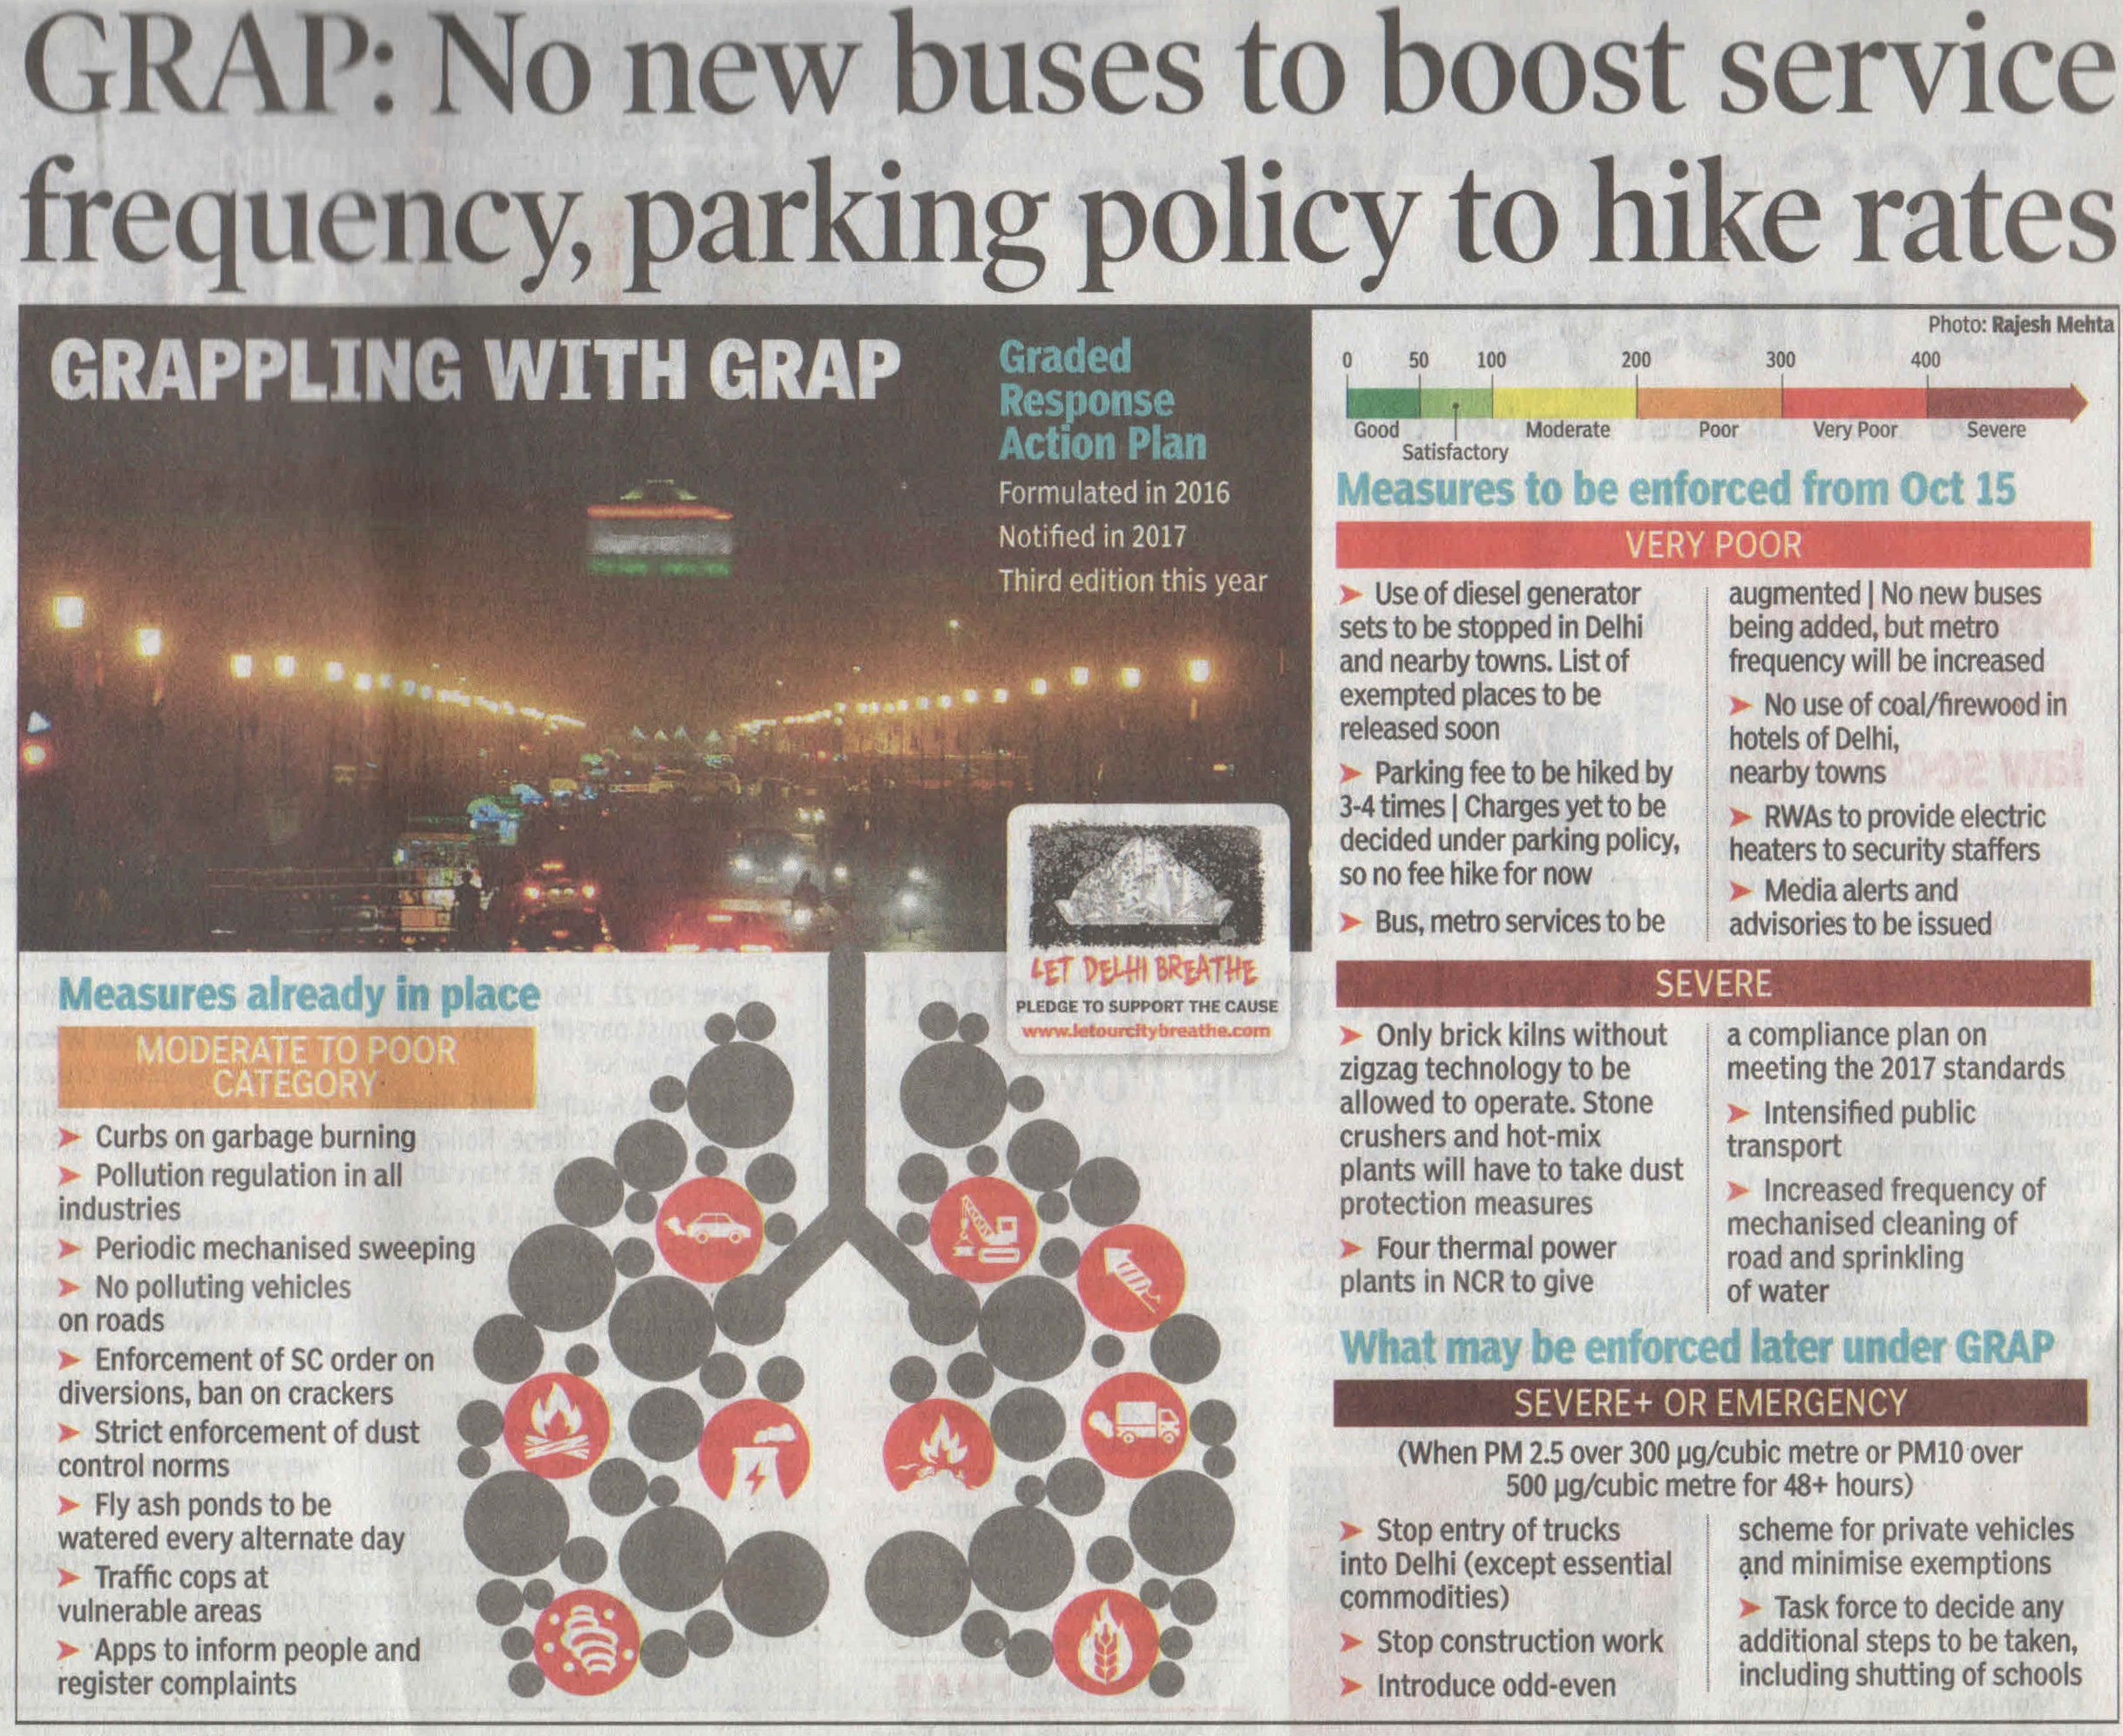 GRAP: No new buses to boost service frequency, parking policy to hike rates